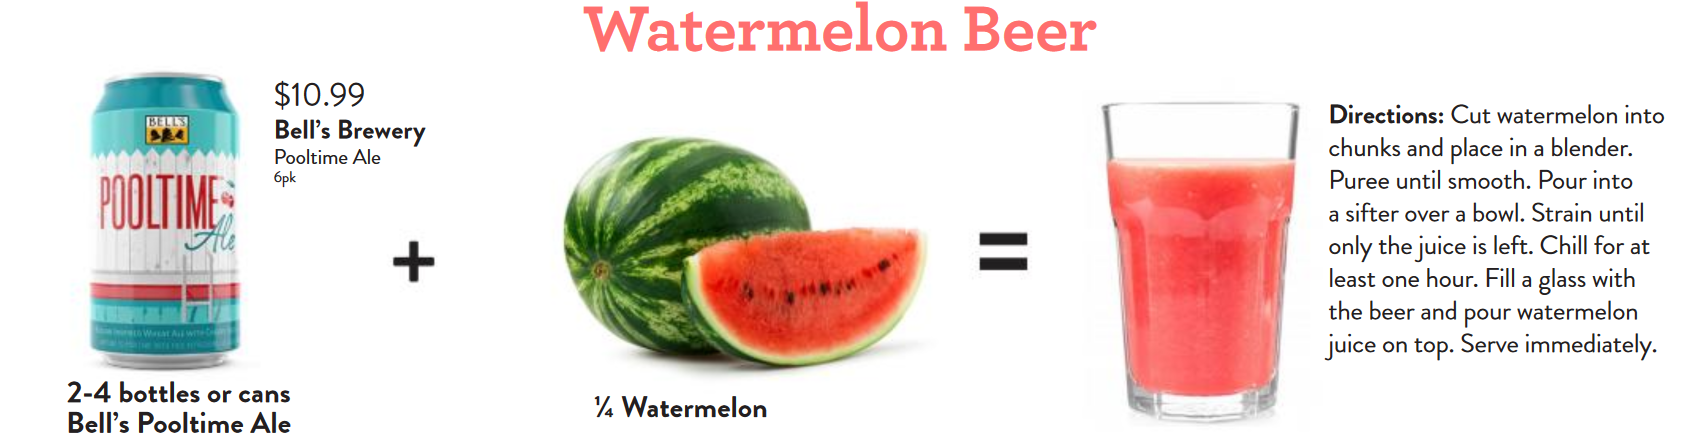 Watermelon Beer.PNG